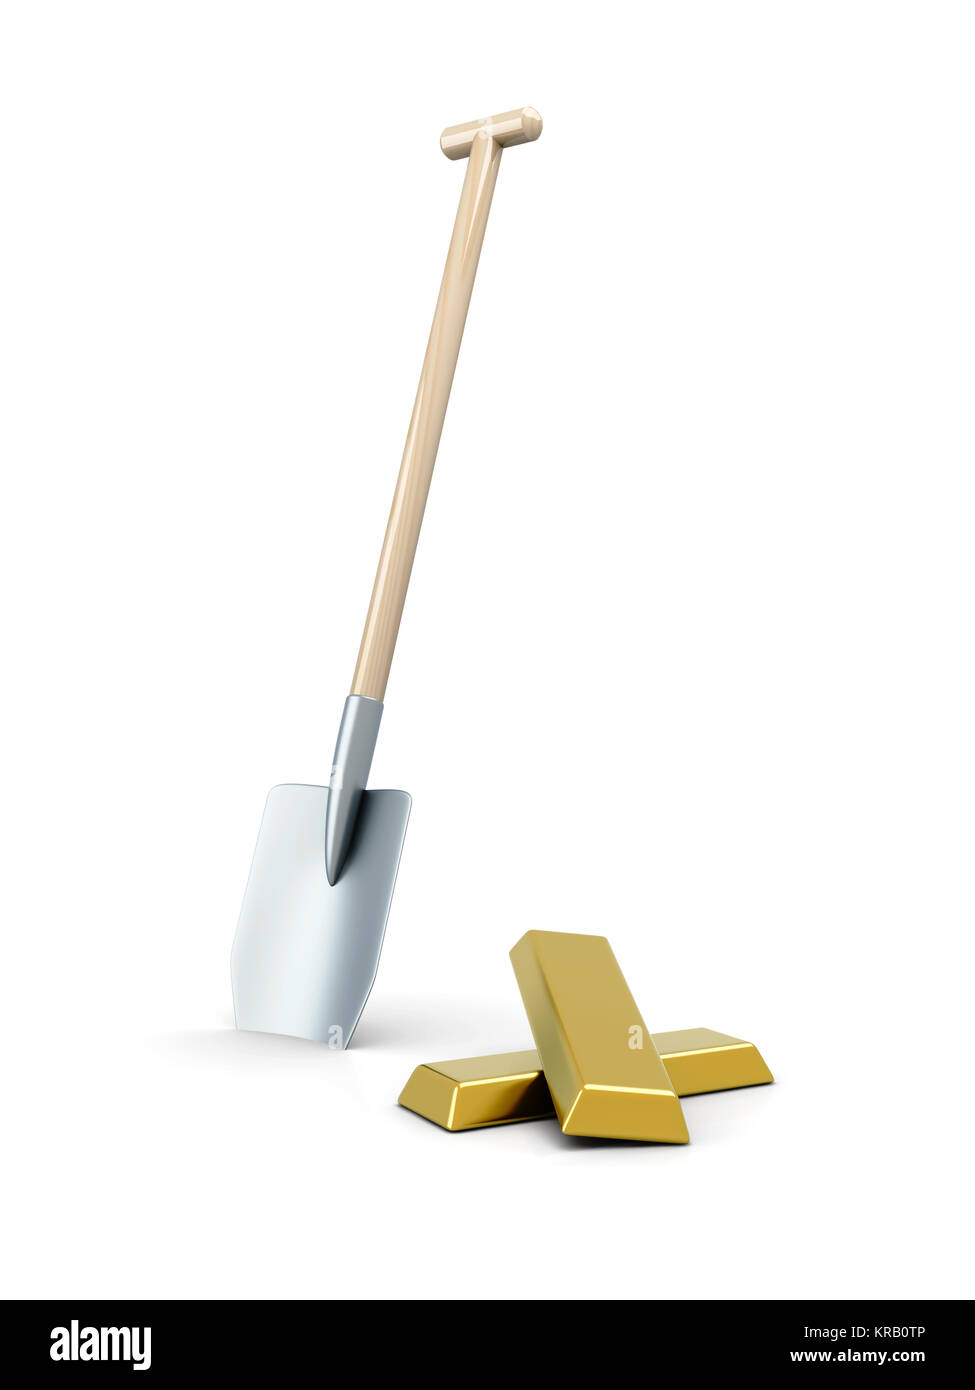 3D rendered Illustration. Isolated on white. Digging out the Gold. - Stock Image